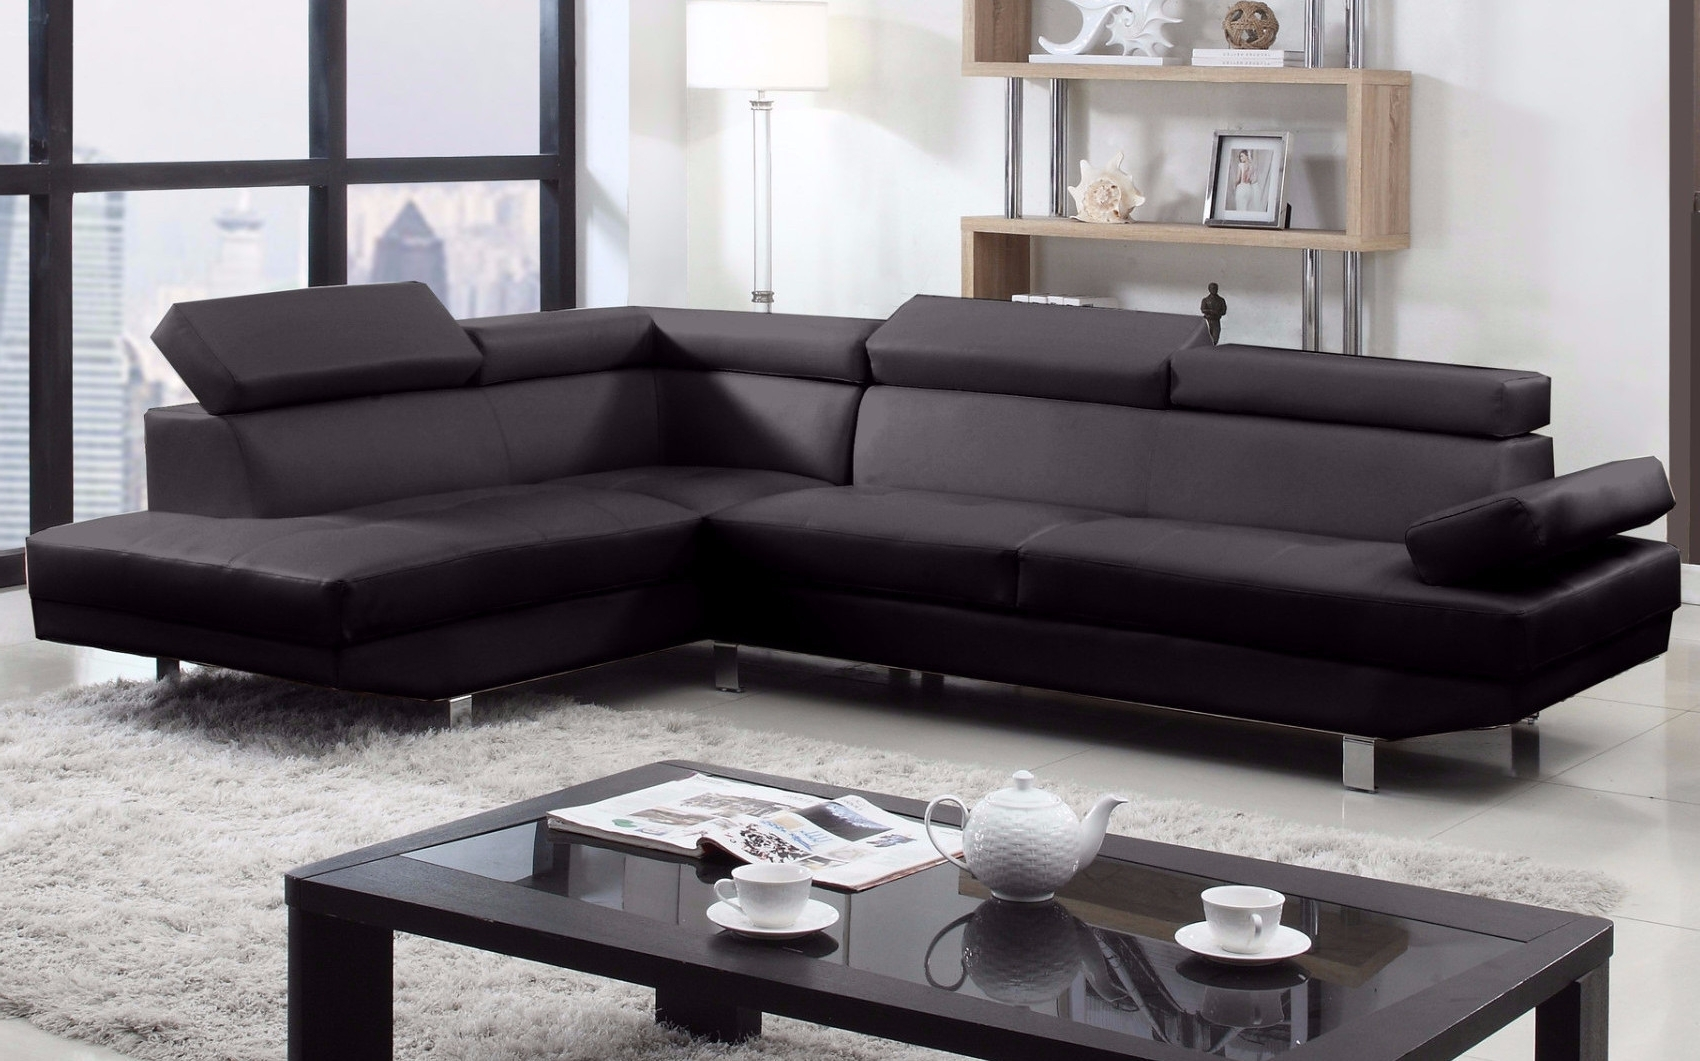 2 Piece Modern Bonded Leather Right Facing Chaise Sectional Sofa With Regard To Trendy 2 Seat Sectional Sofas (View 15 of 15)